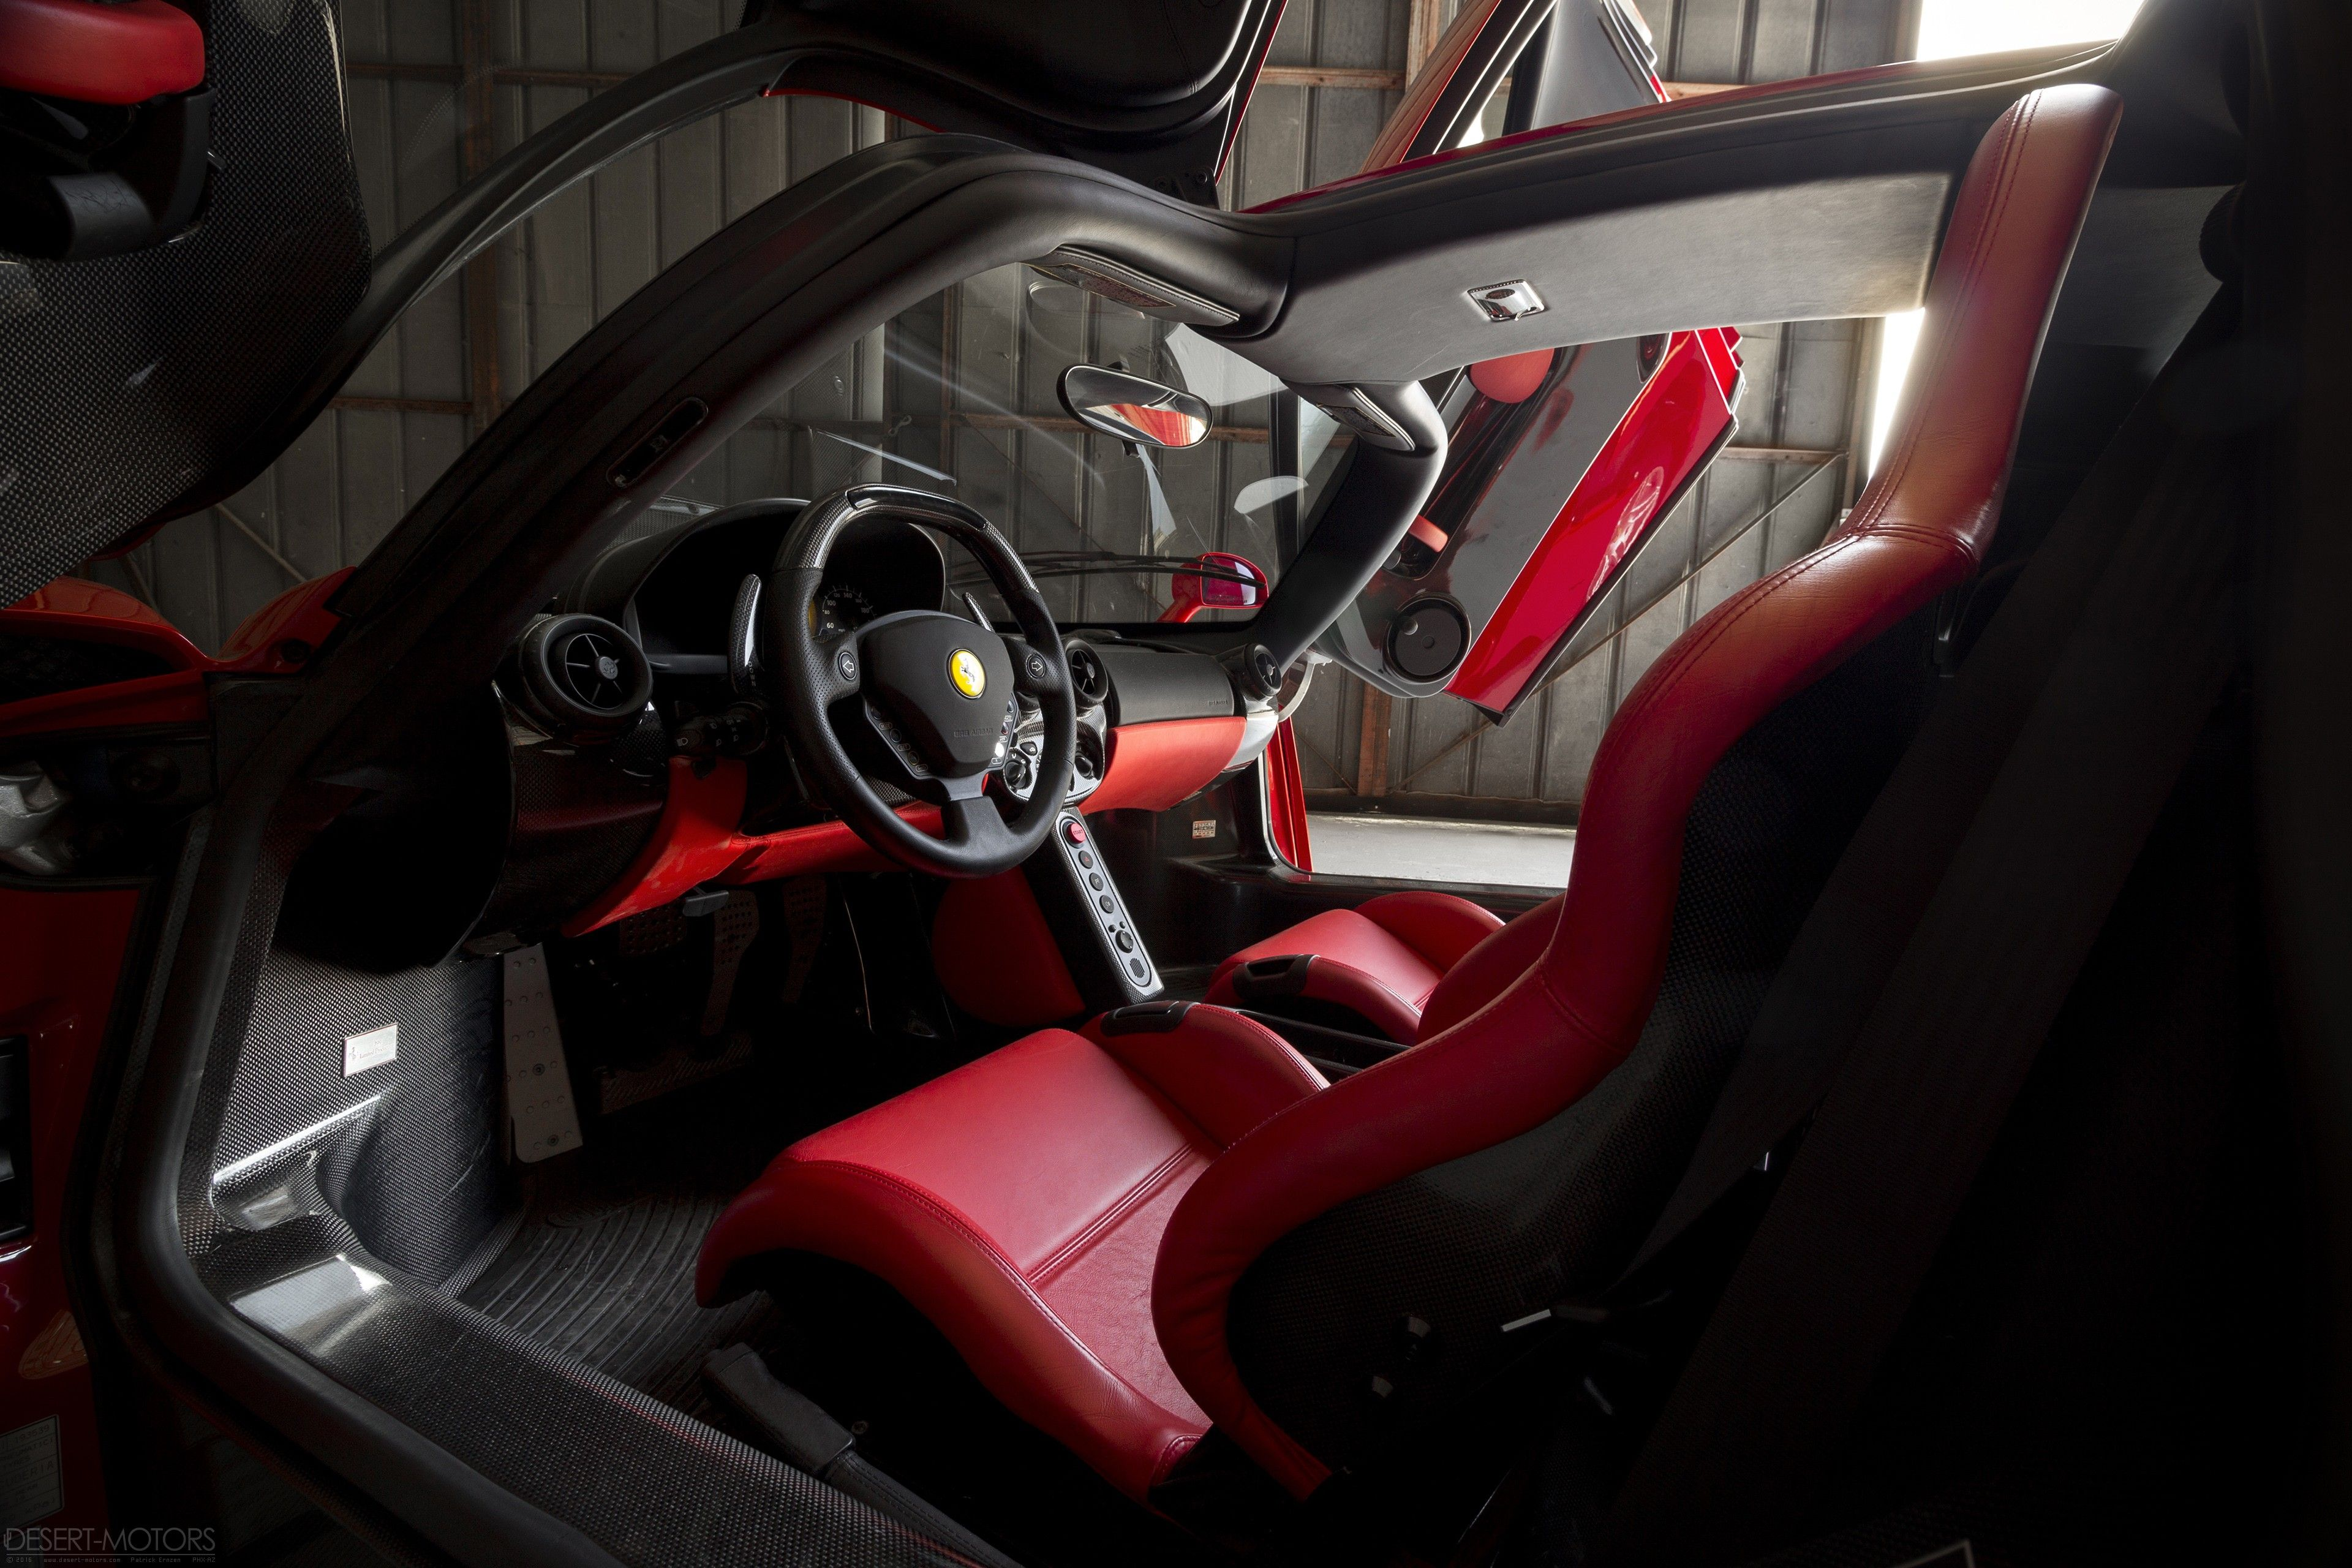 Ferrari enzo one of the best interior of all time imo hd ferrari enzo one of the best interior of all time imo hd wallpaper vanachro Images